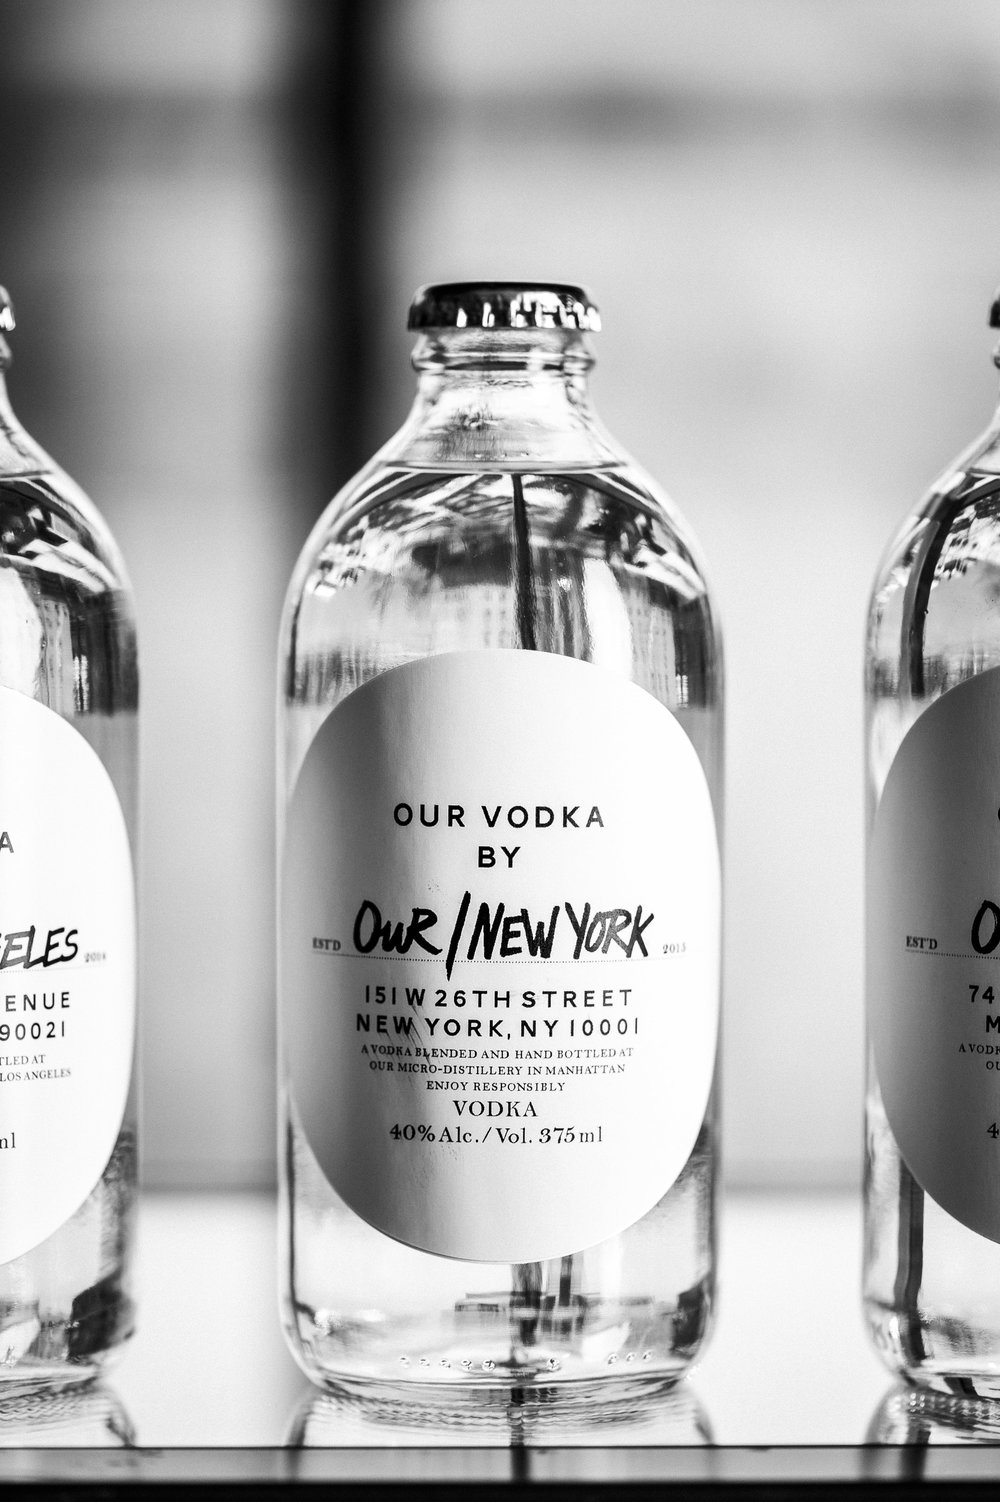 press-bottles-OurVodka180131_0000-46-min.jpg